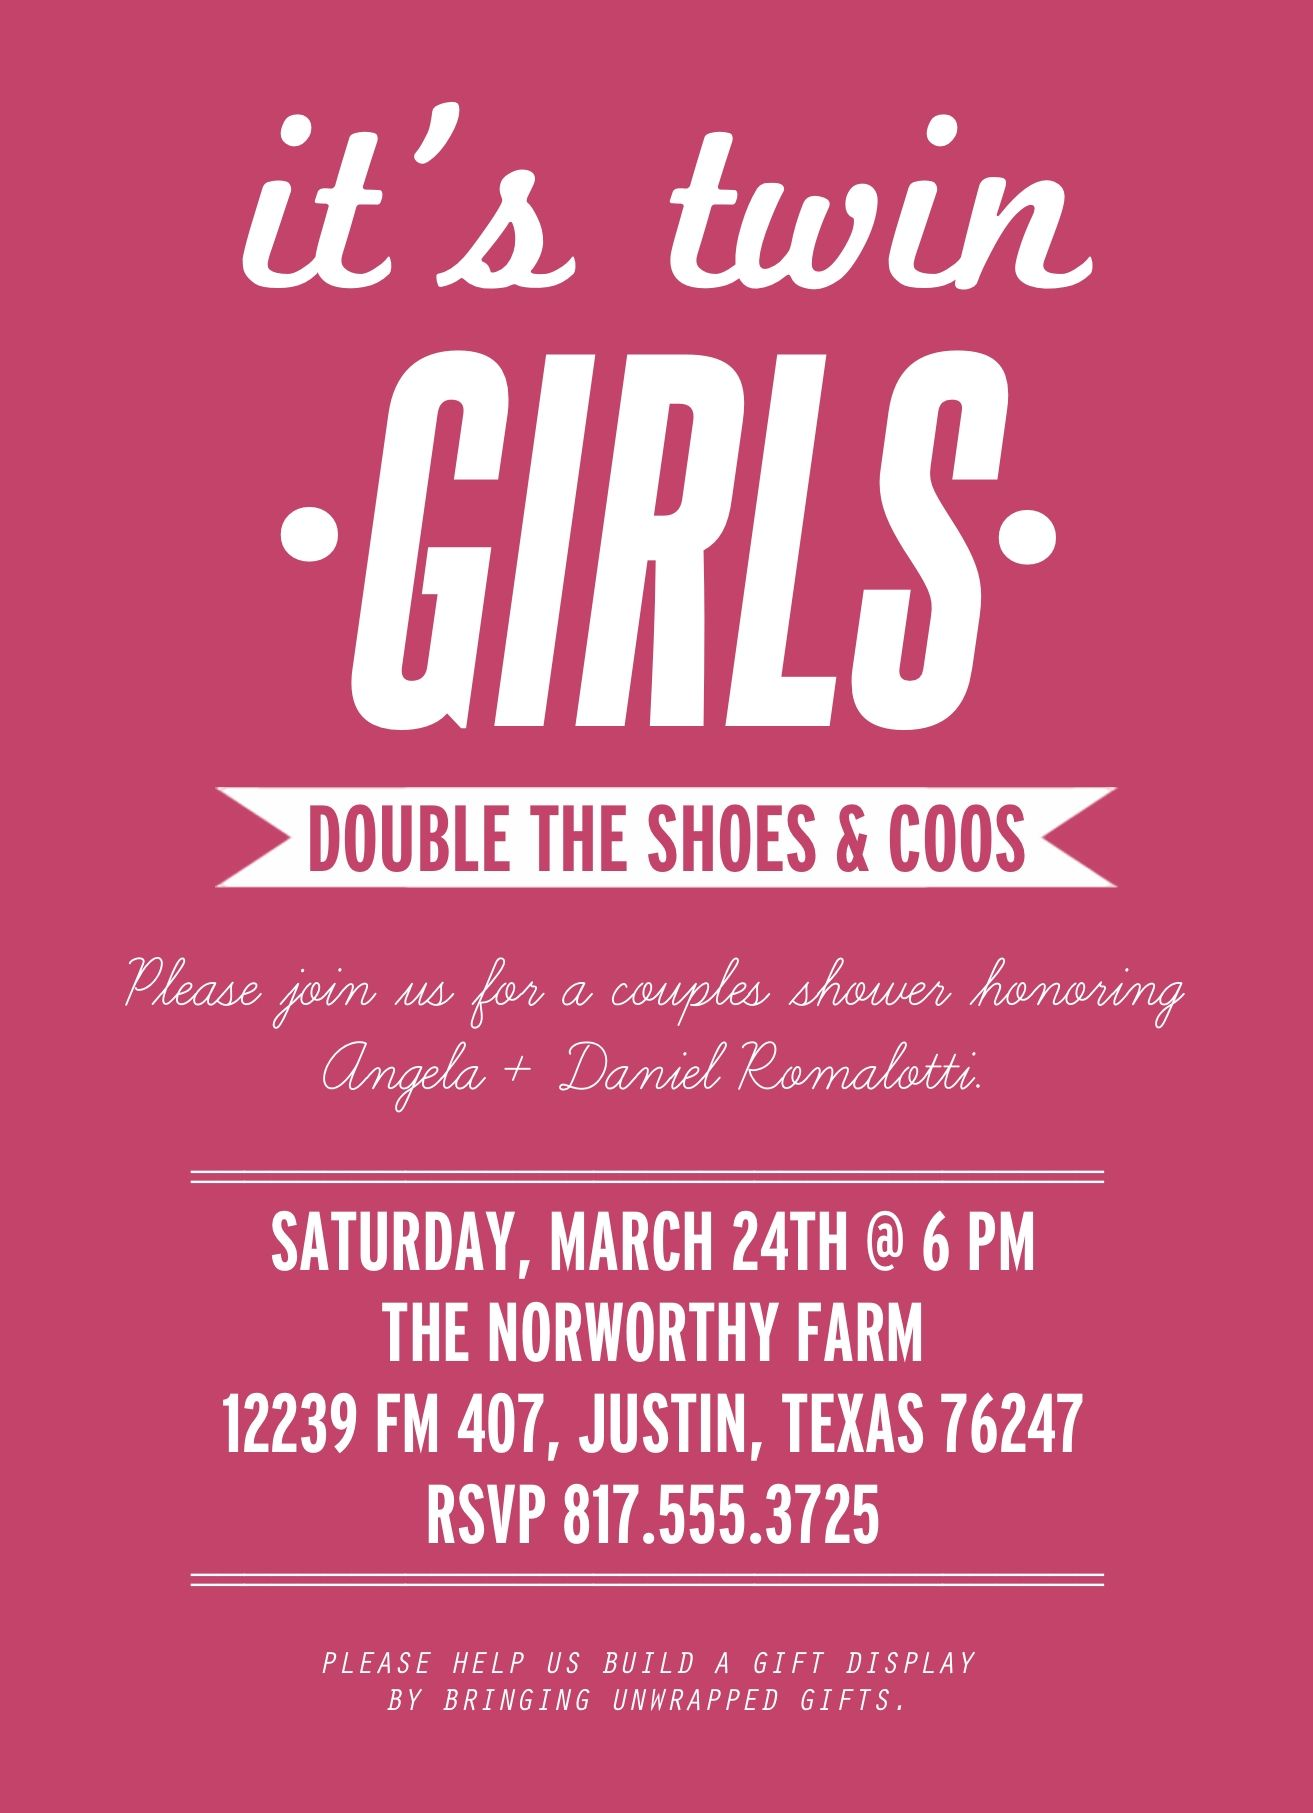 Wording Ideas For Invites Baby Shower Twin Girls Couples Showe Twins Baby Shower Invitations Baby Shower Invites For Girl Twin Girls Baby Shower Invitations